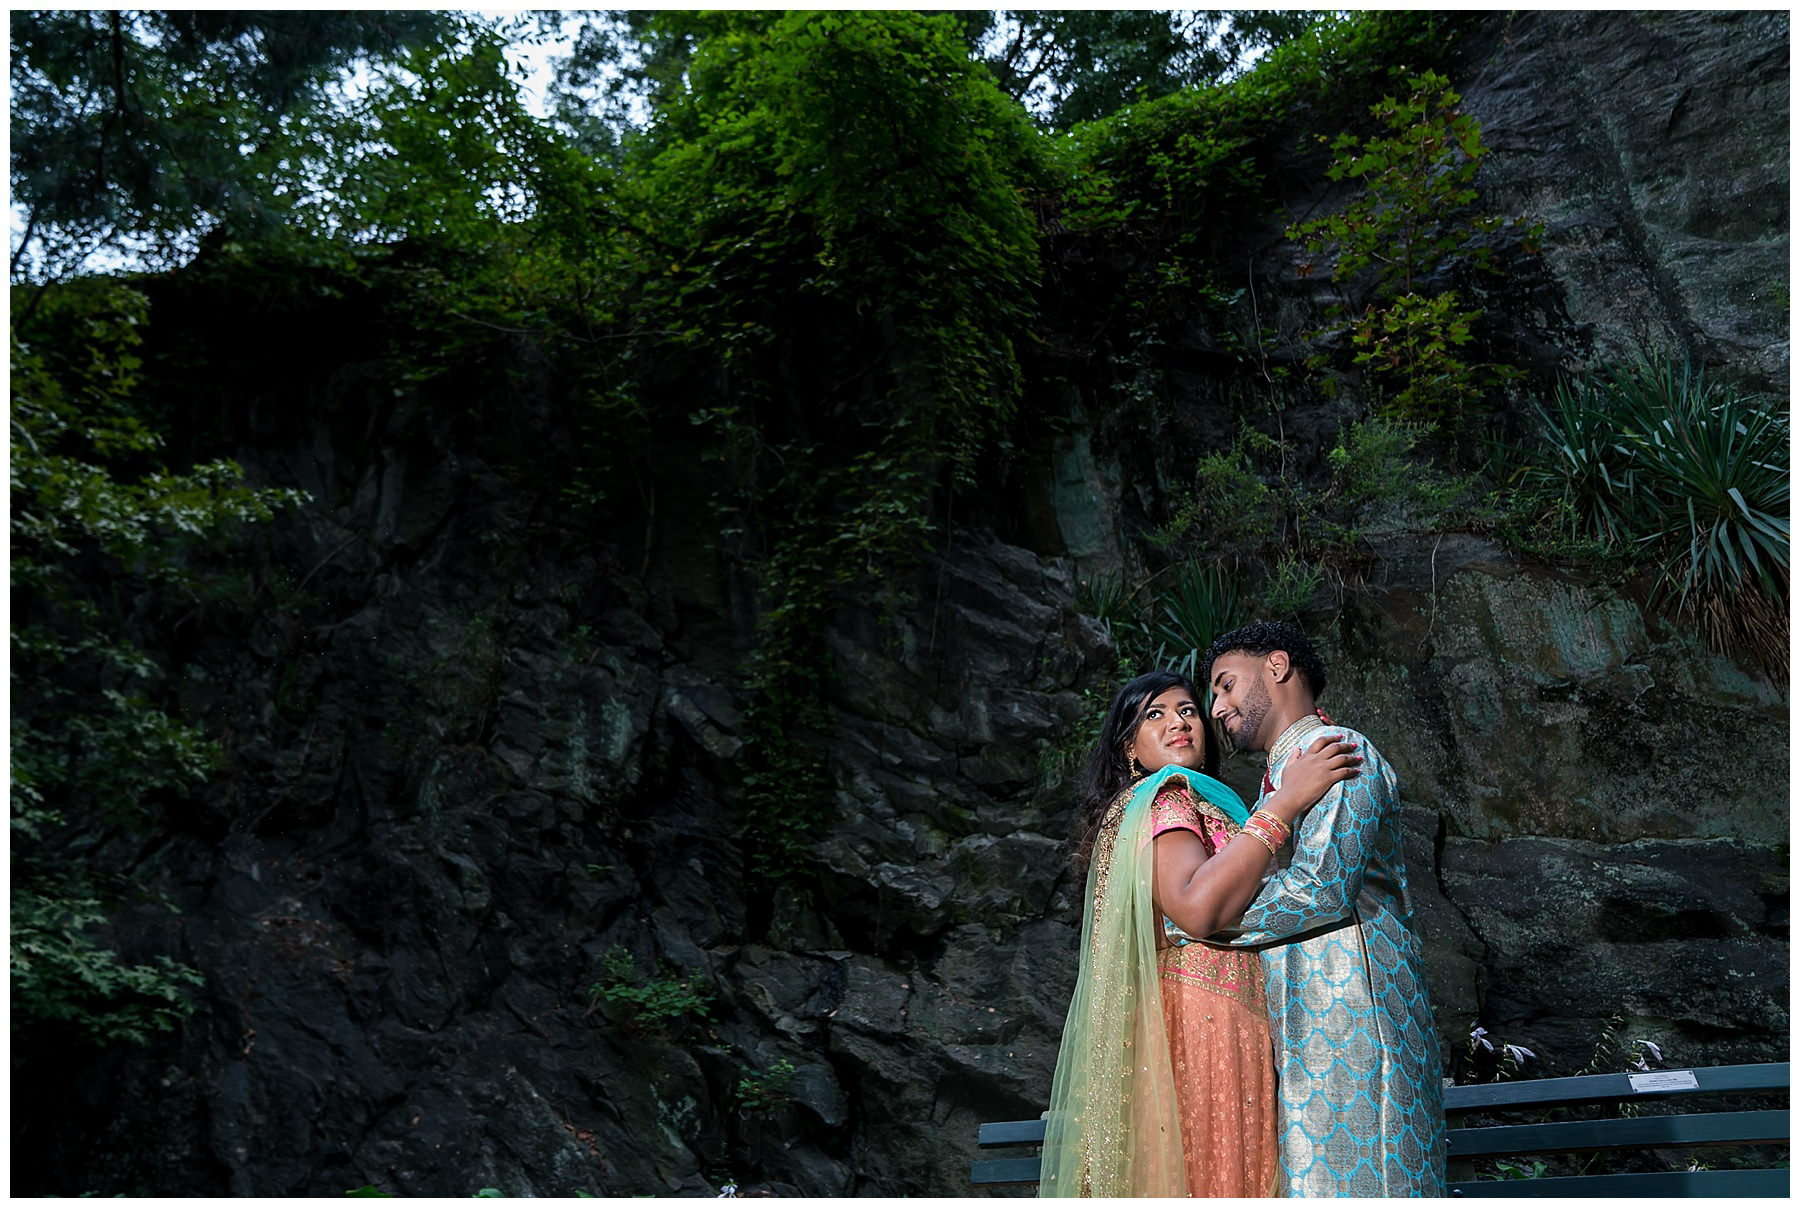 fort-tysons-park-new-york-engagement-shoot-sibyl-jithin-8.jpg